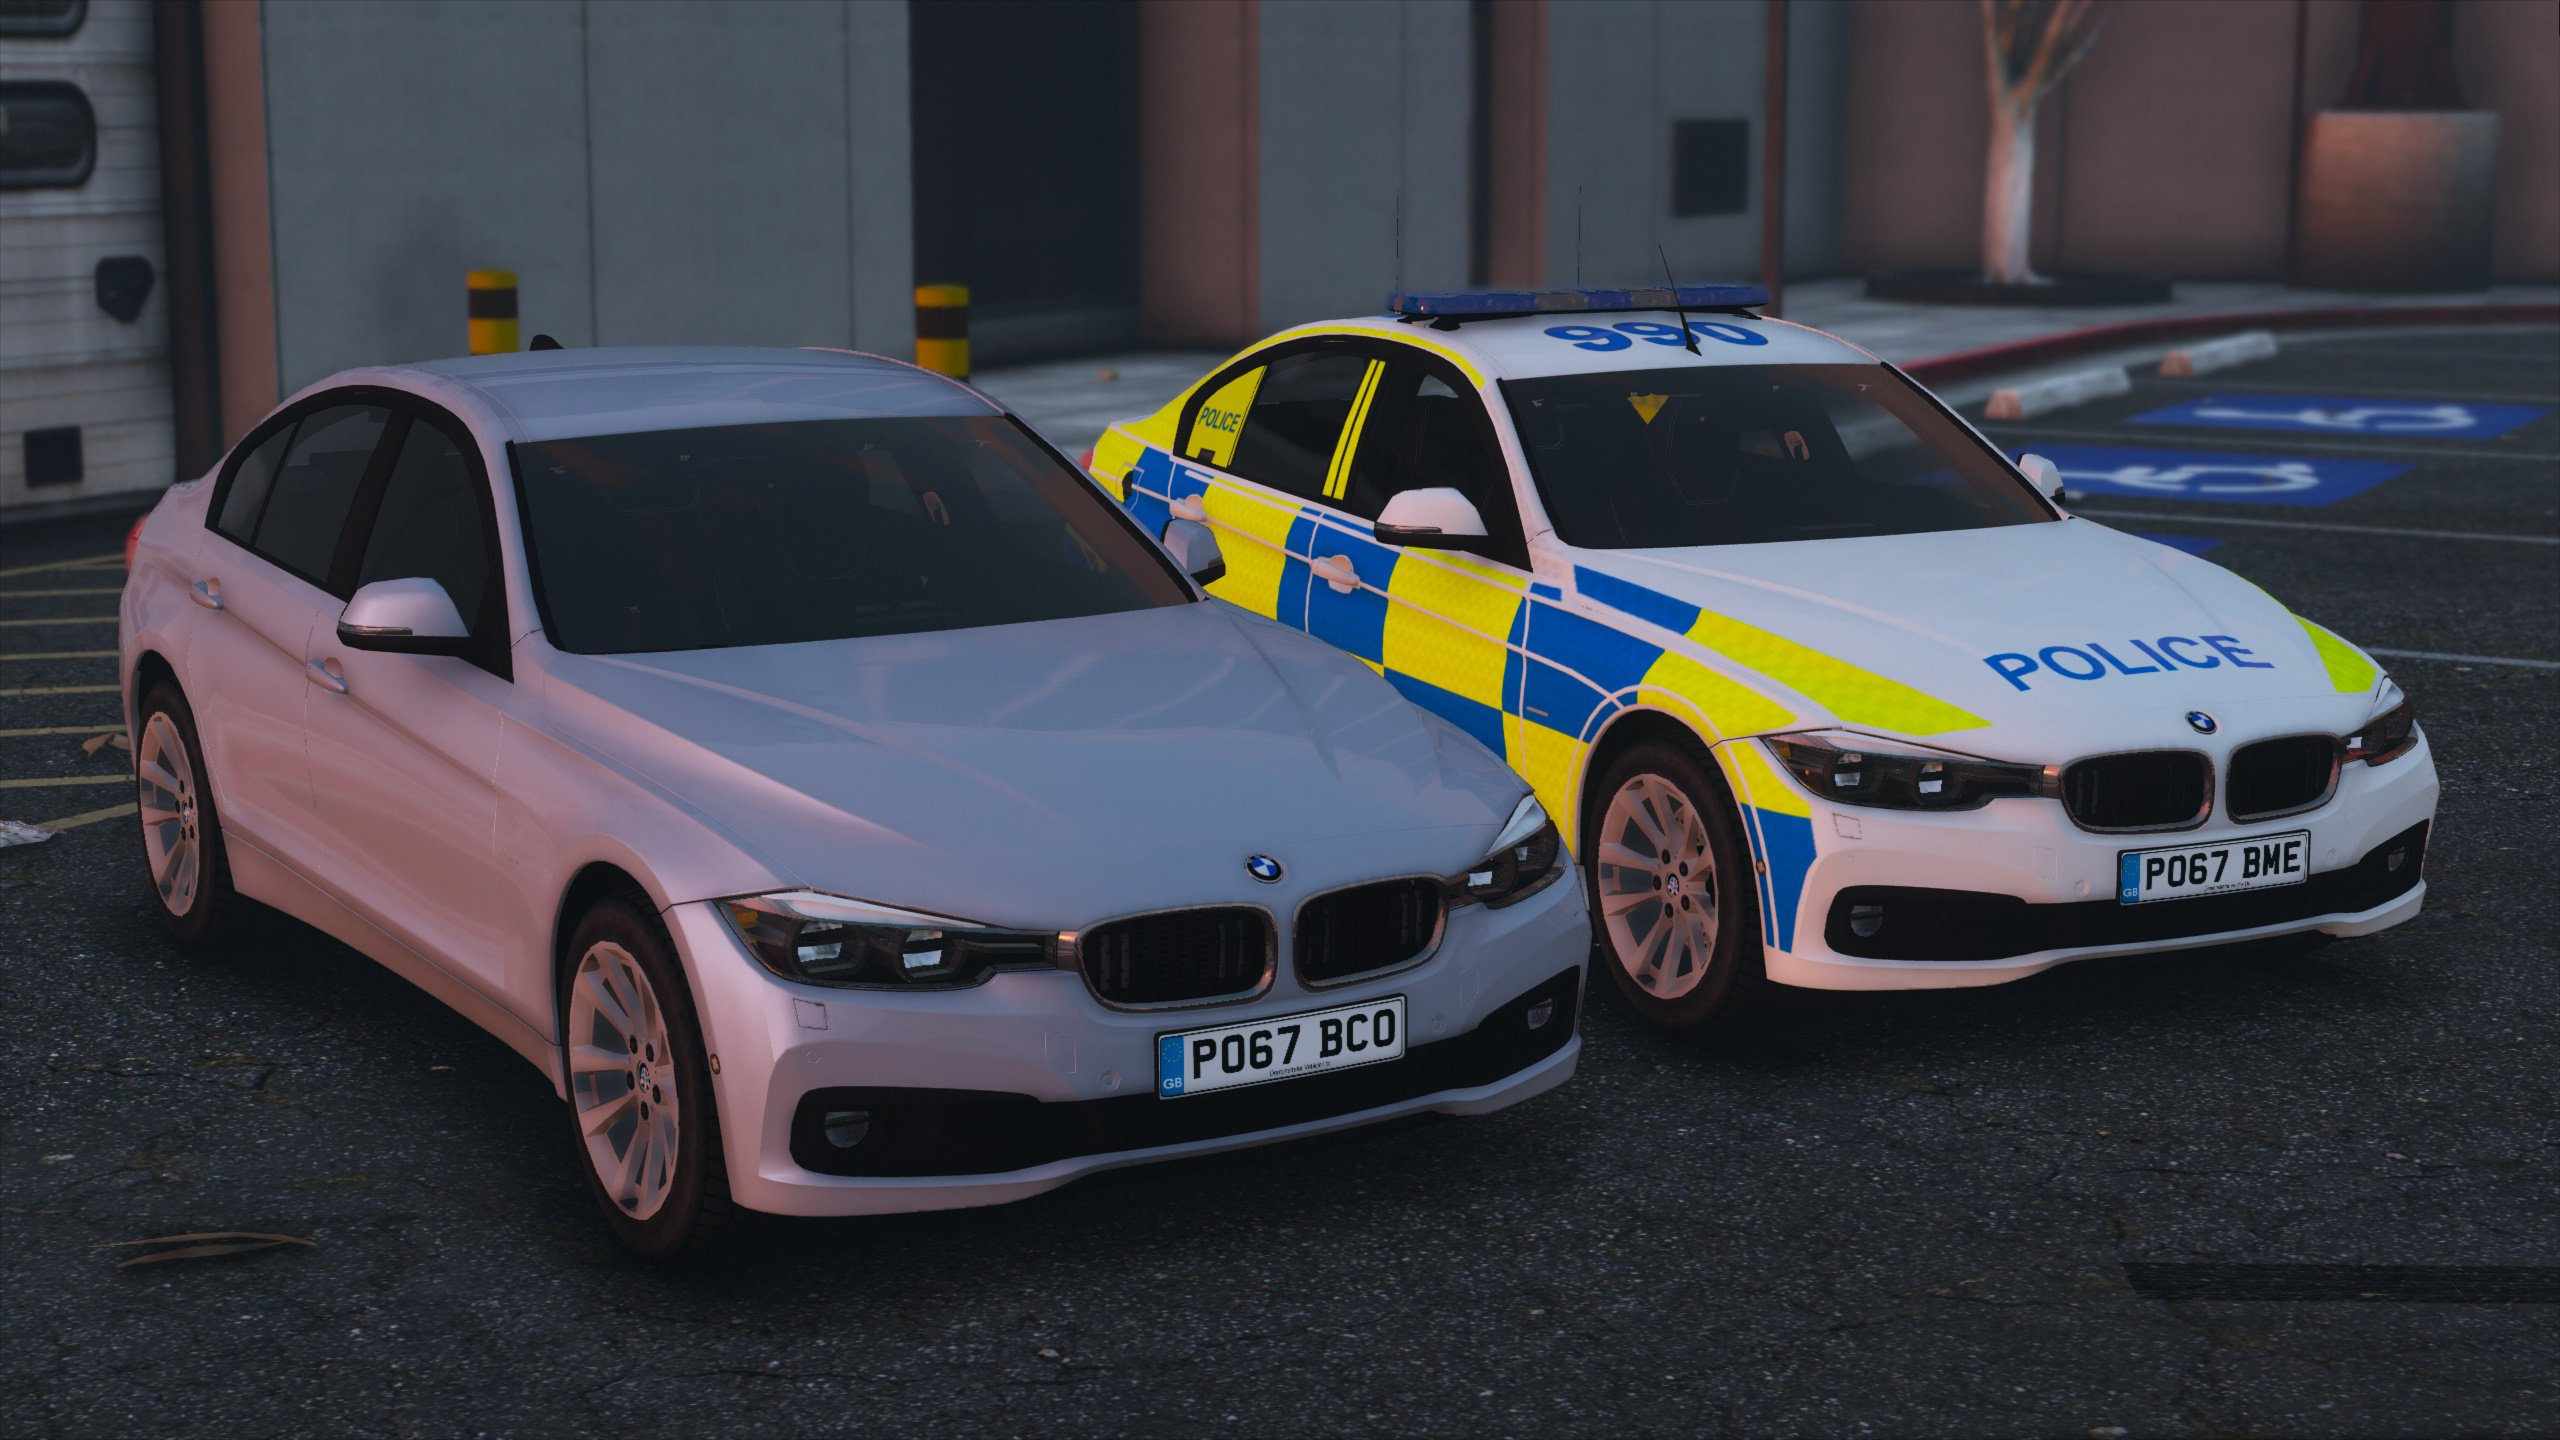 2017 Police Bmw 330d Saloon Pack Replace Els Gta5